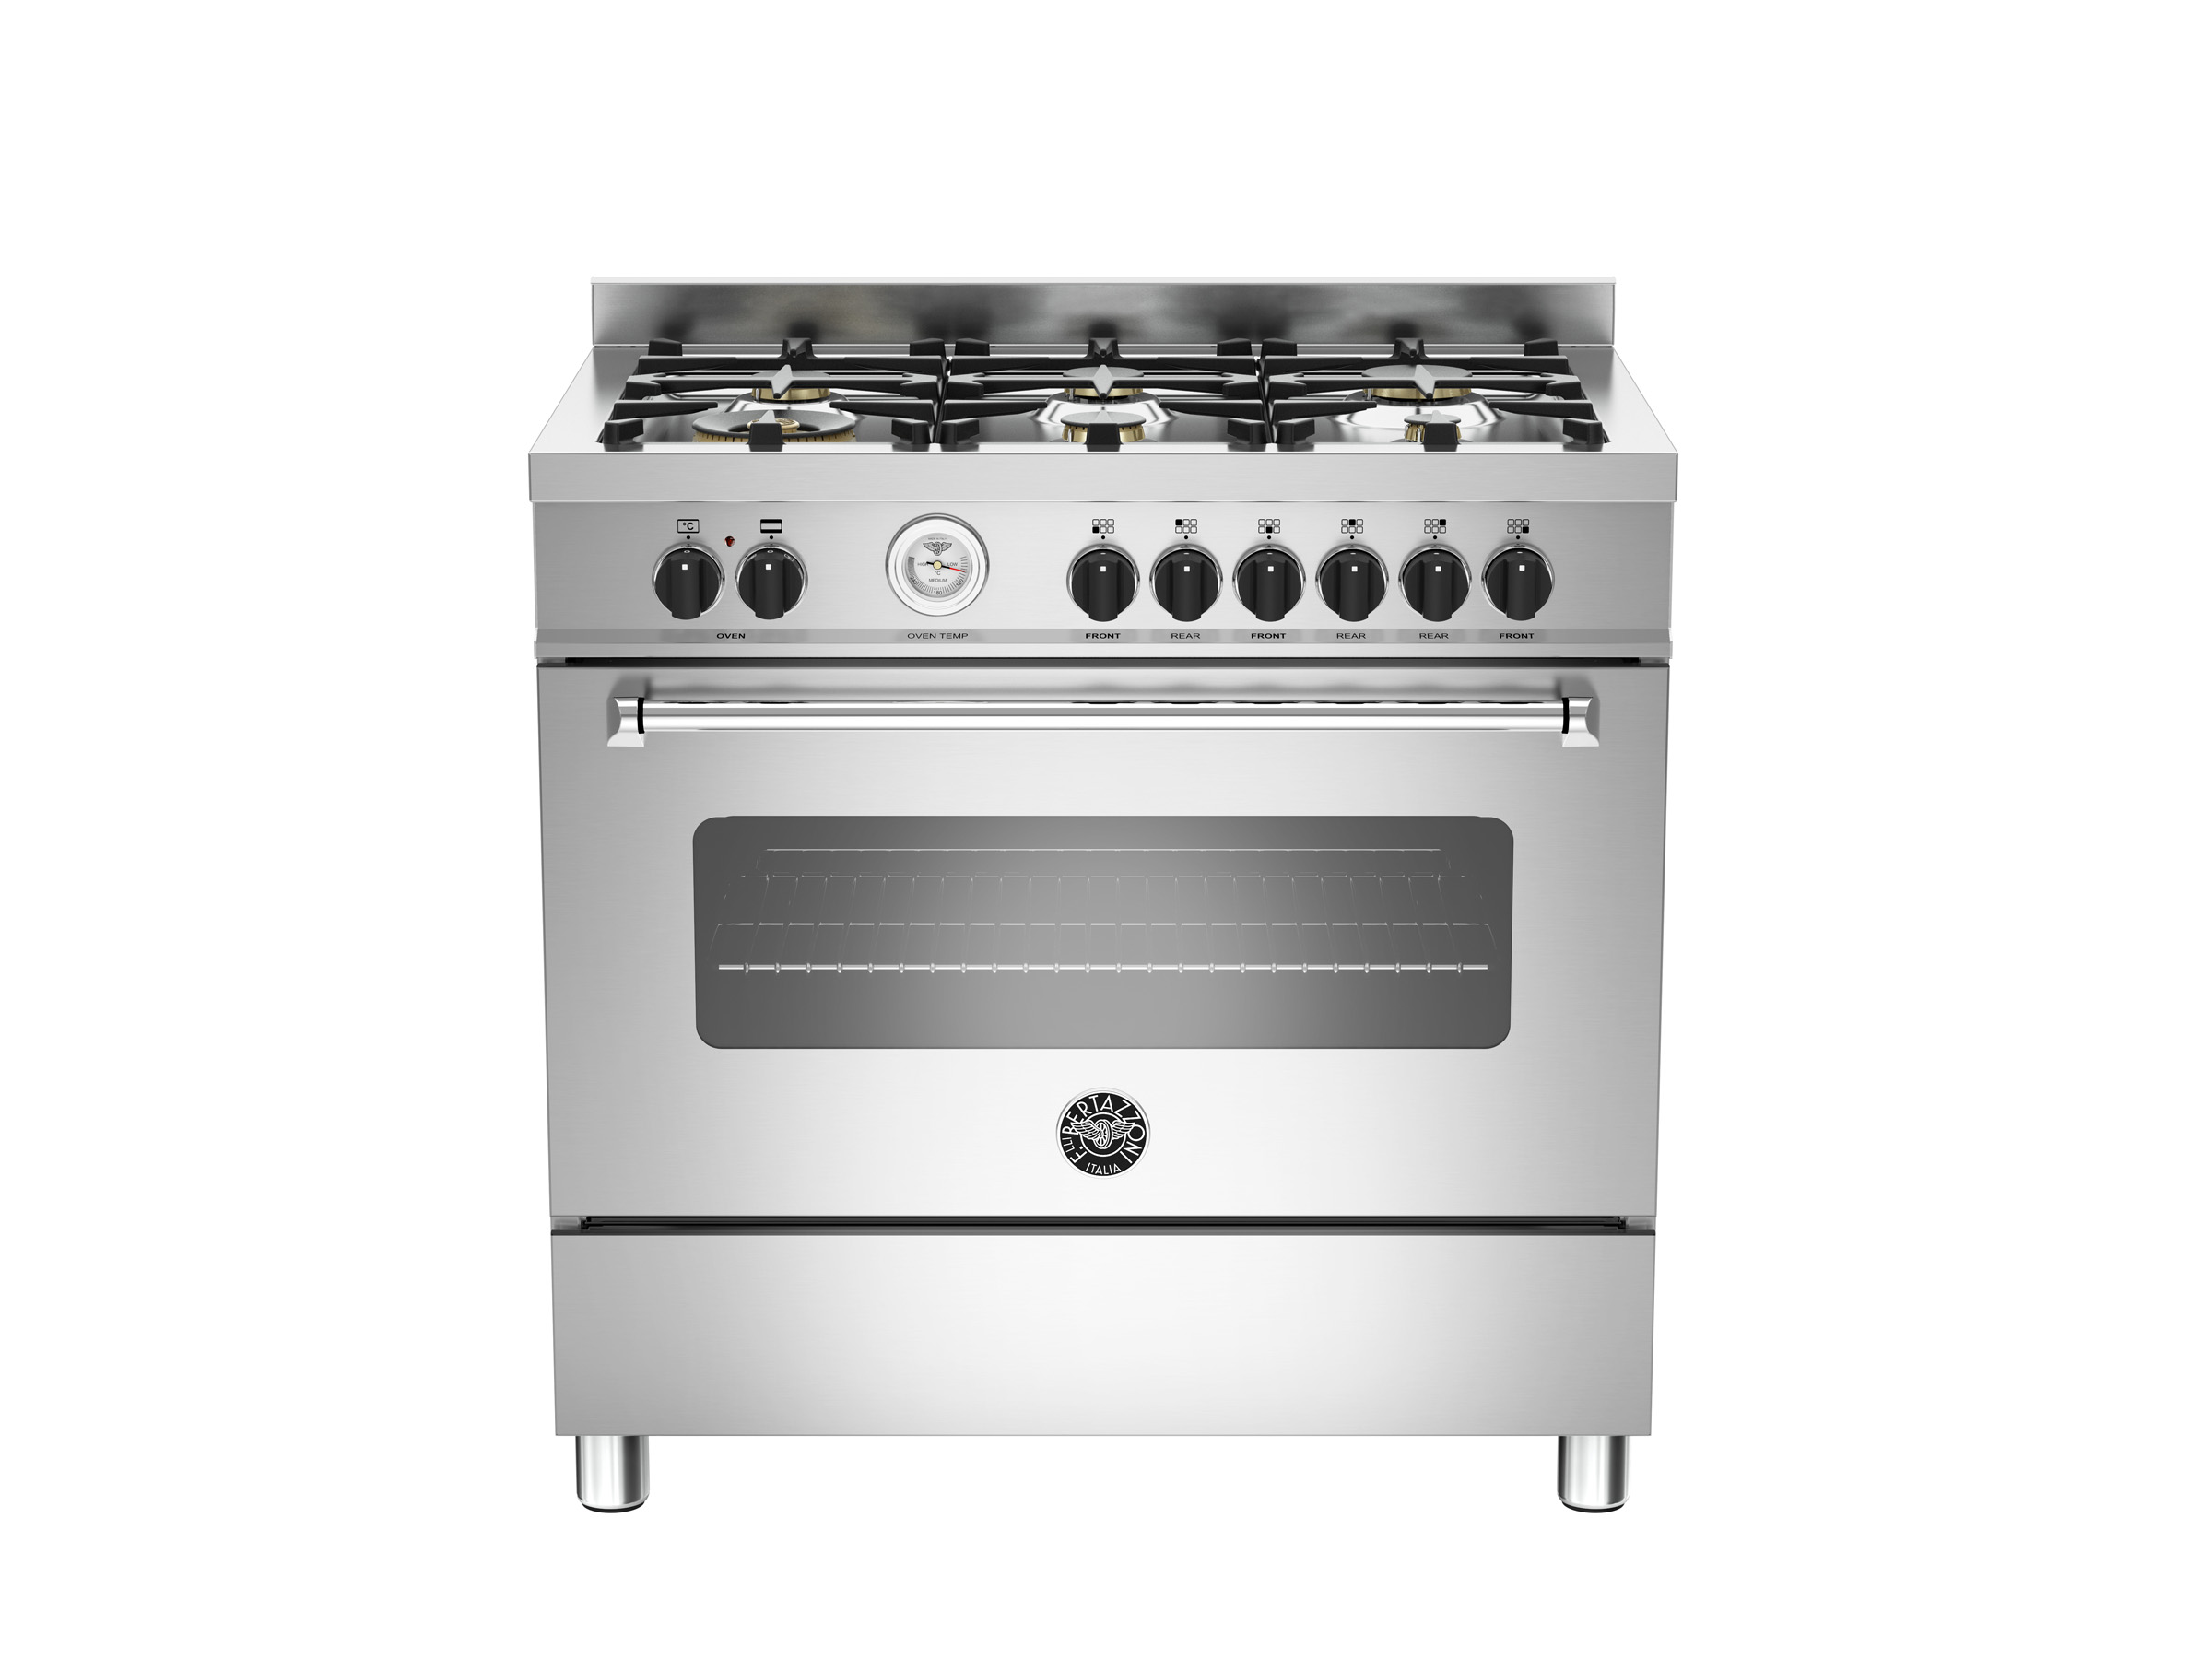 90 cm 6-burner electric oven | Bertazzoni - Stainless